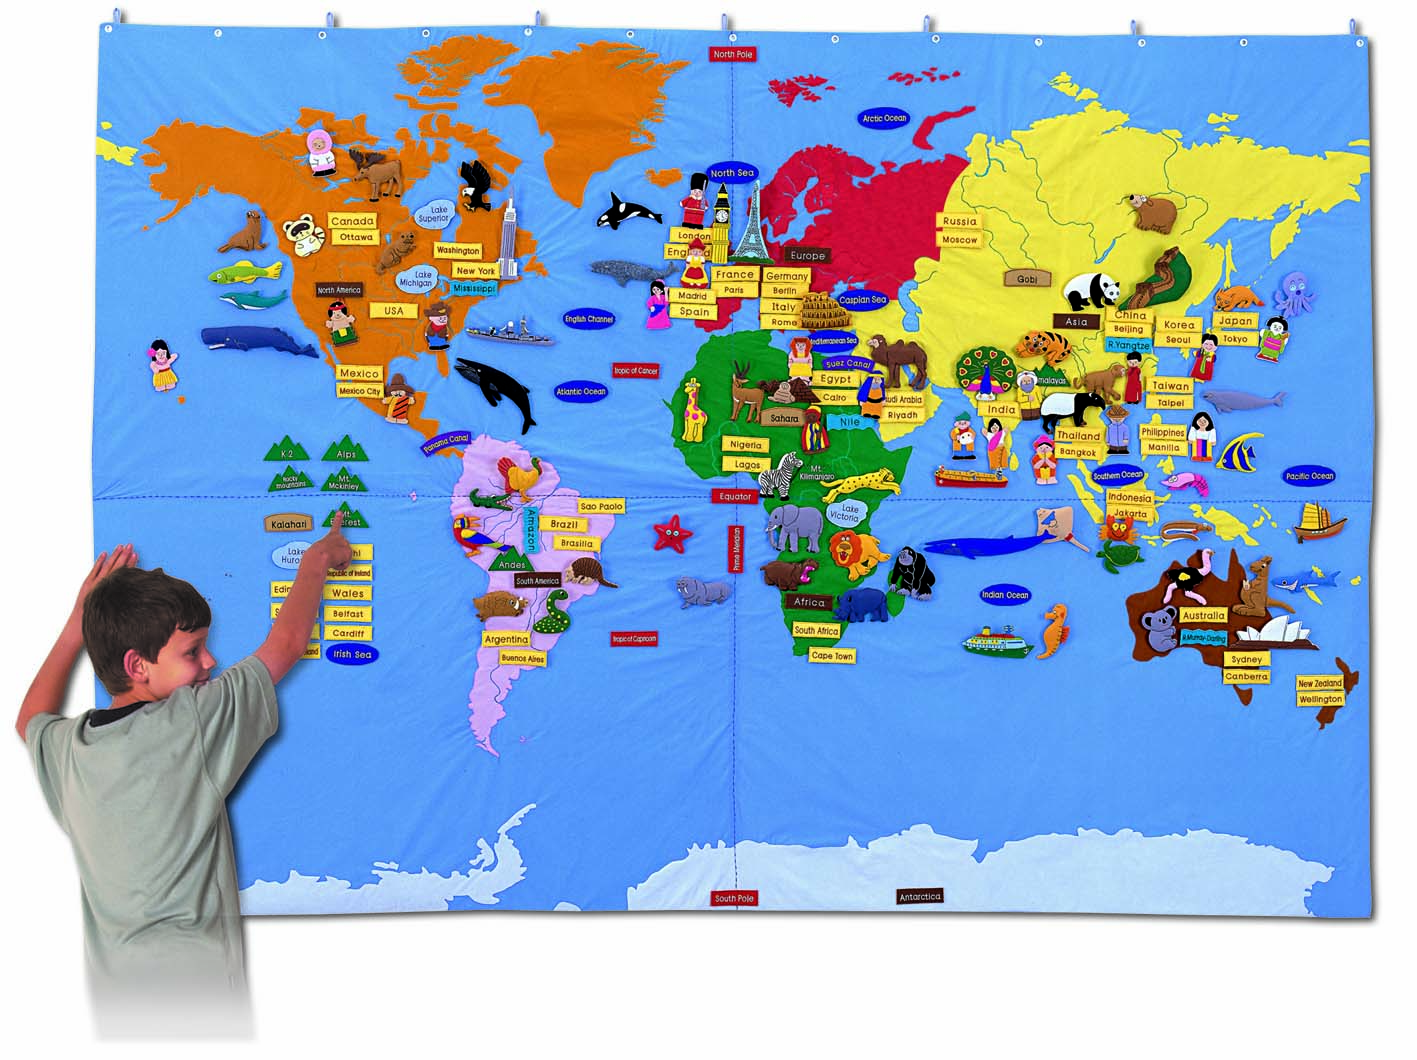 The Picture Of The World Map.Fabric World Map Giant Size